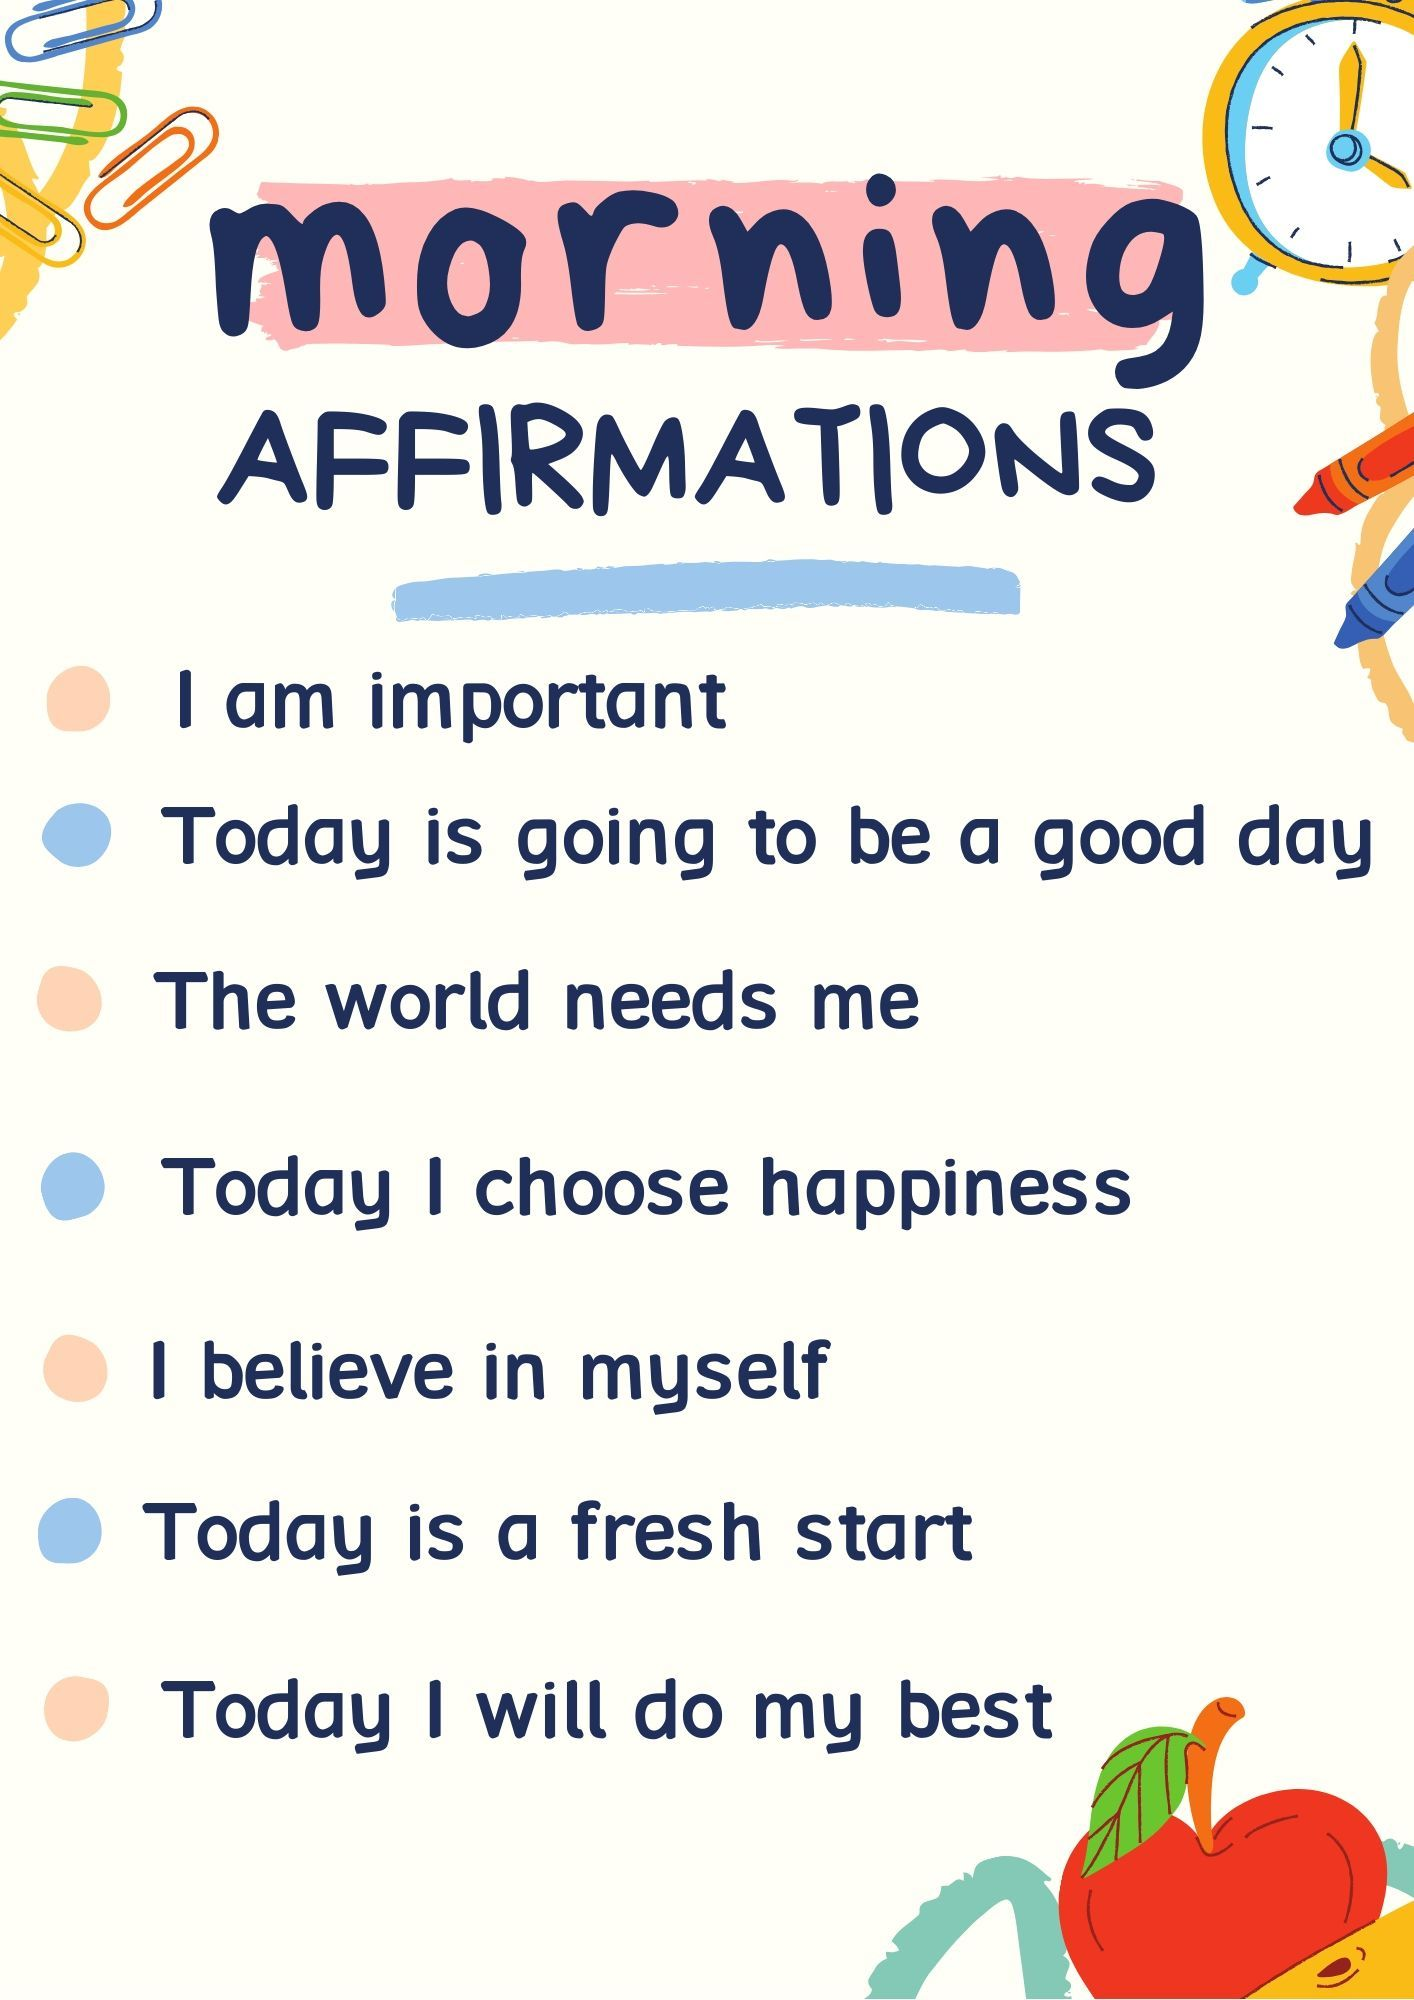 10ions5 morning affirmations